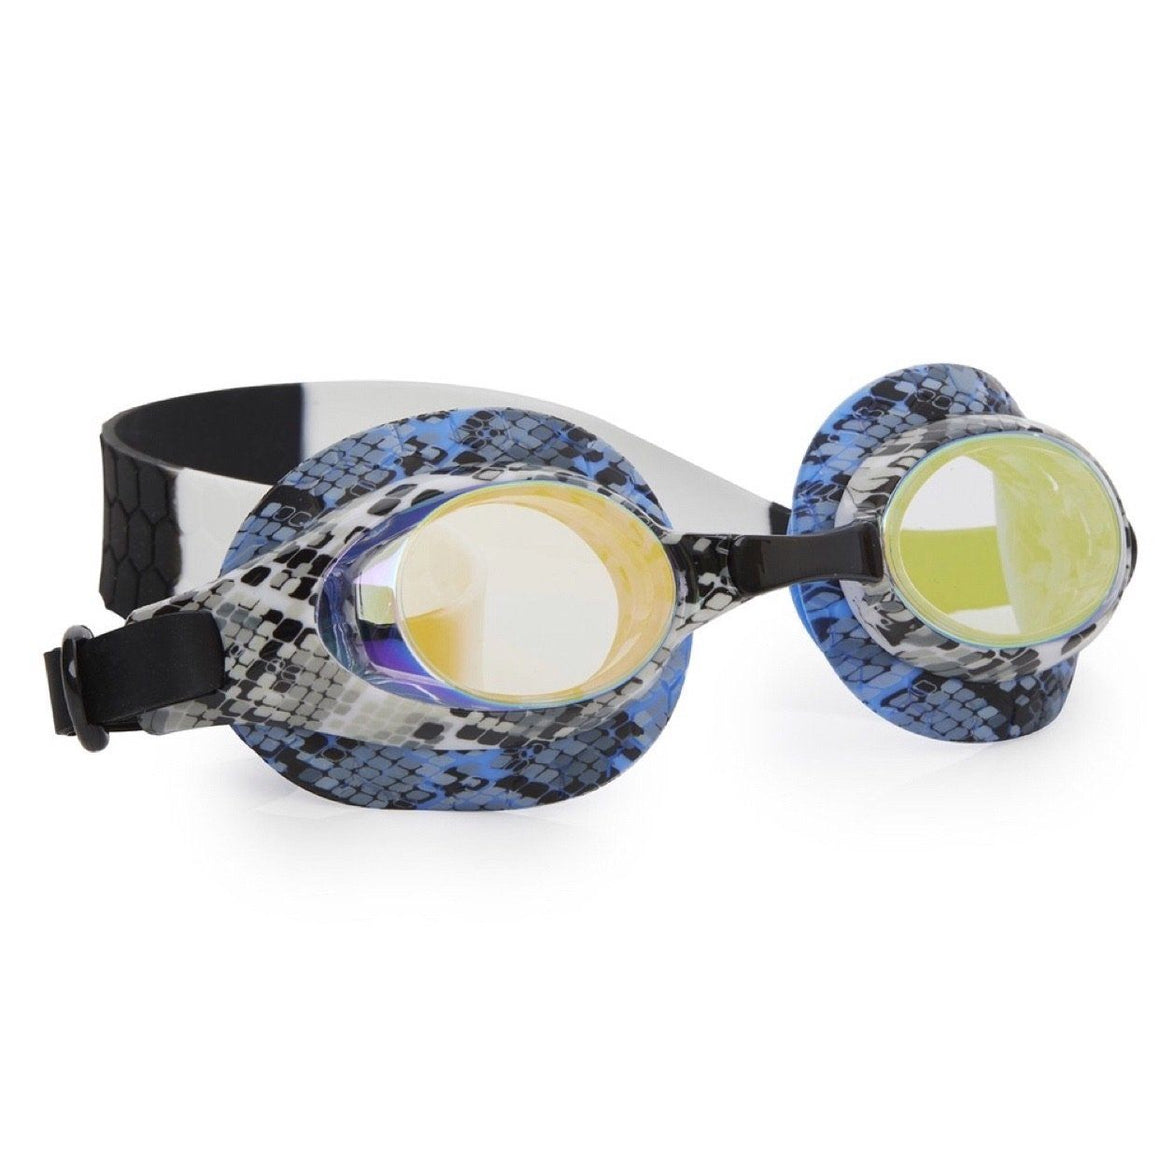 Bling2O - Jake the Snake Swim Goggles - White Snake Swim Goggles Bling2O